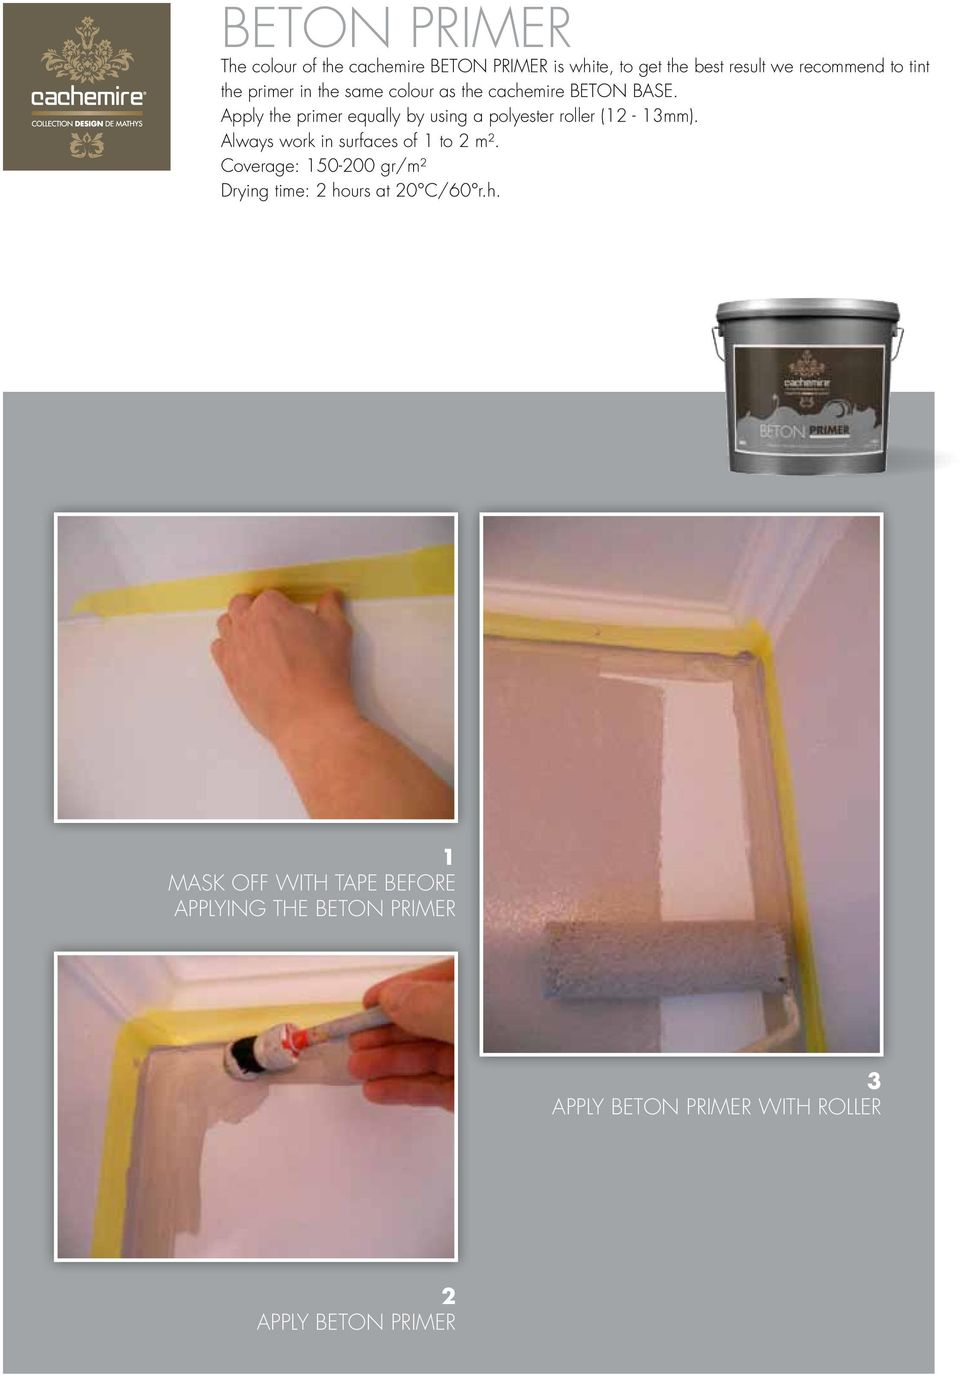 Apply the primer equally by using a polyester roller (12-13mm). Always work in surfaces of 1 to 2 m².